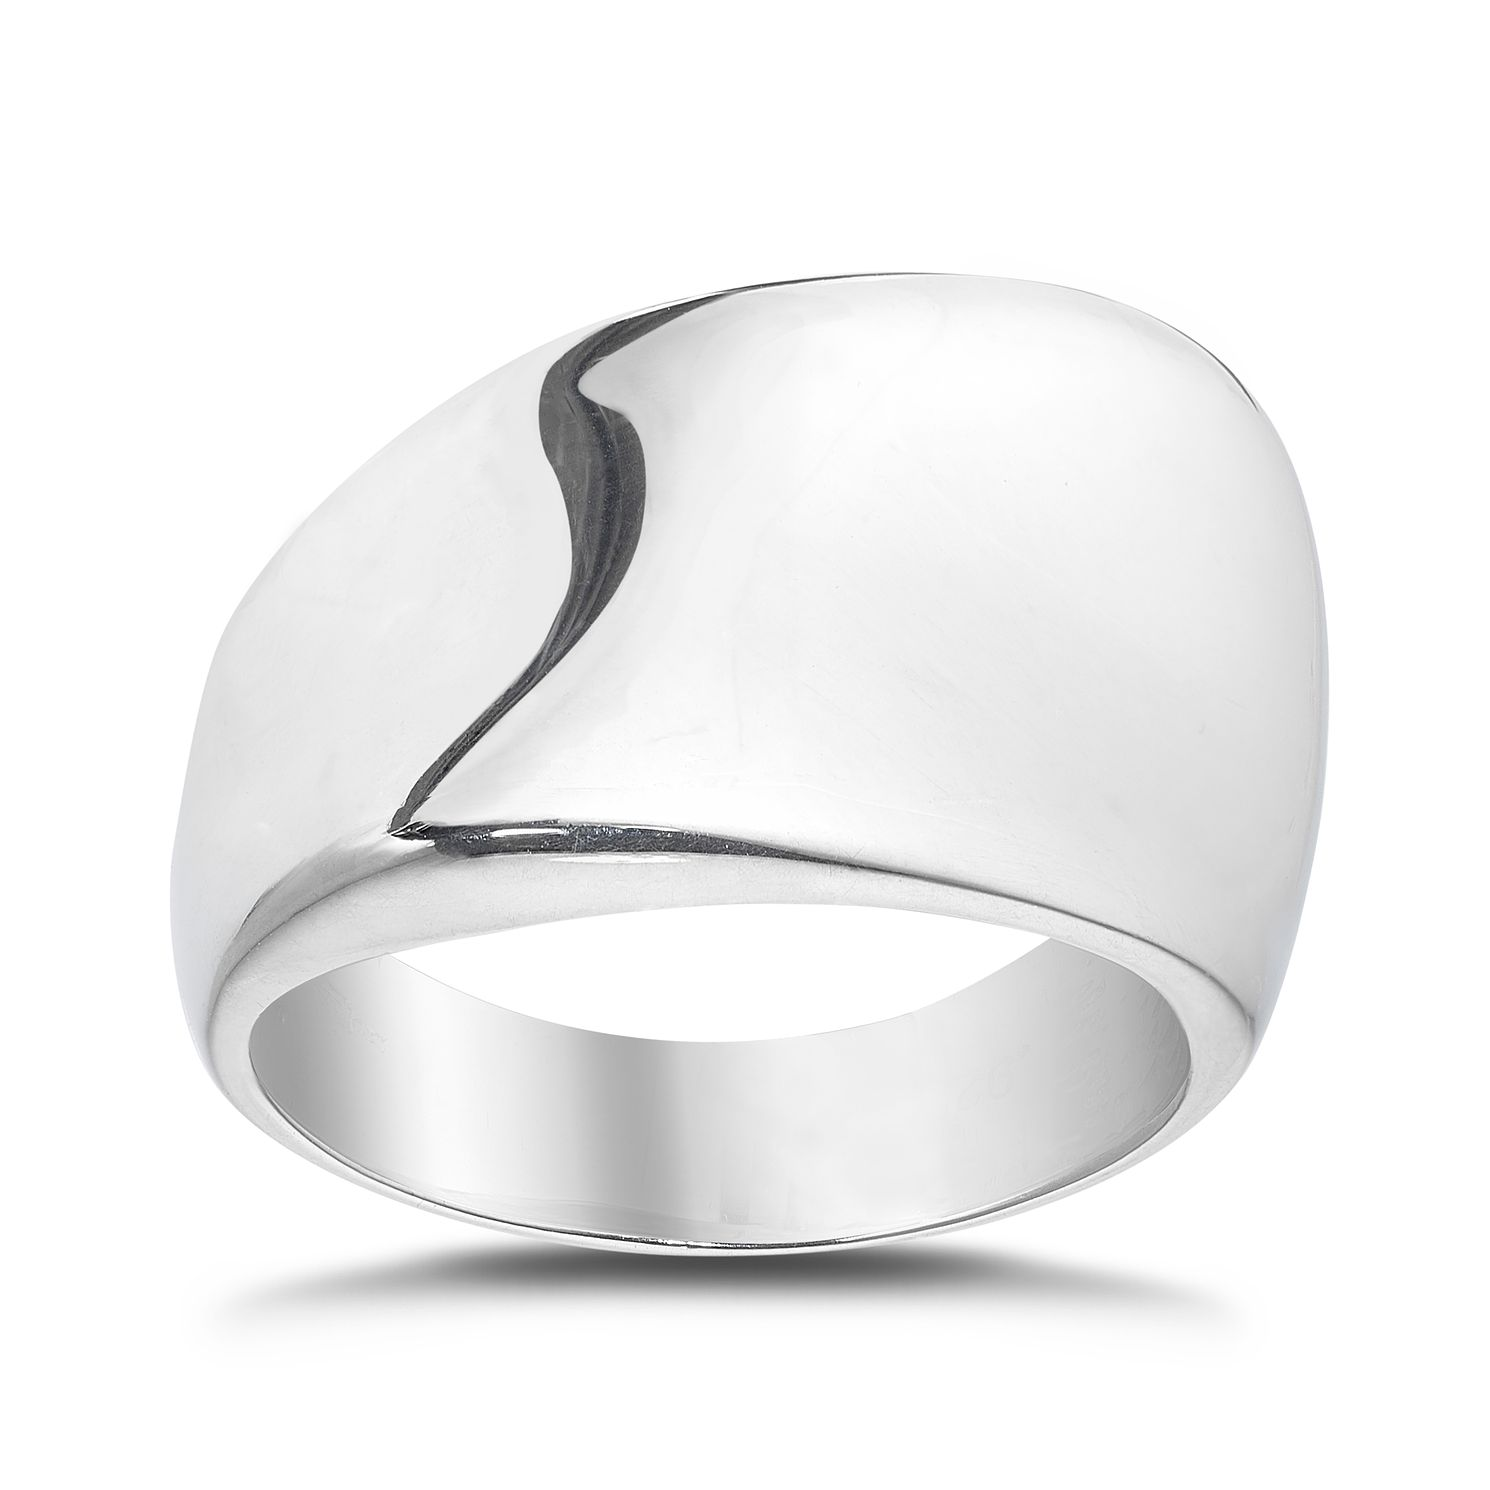 Sterling Silver Polished Ring - Product number 4893336